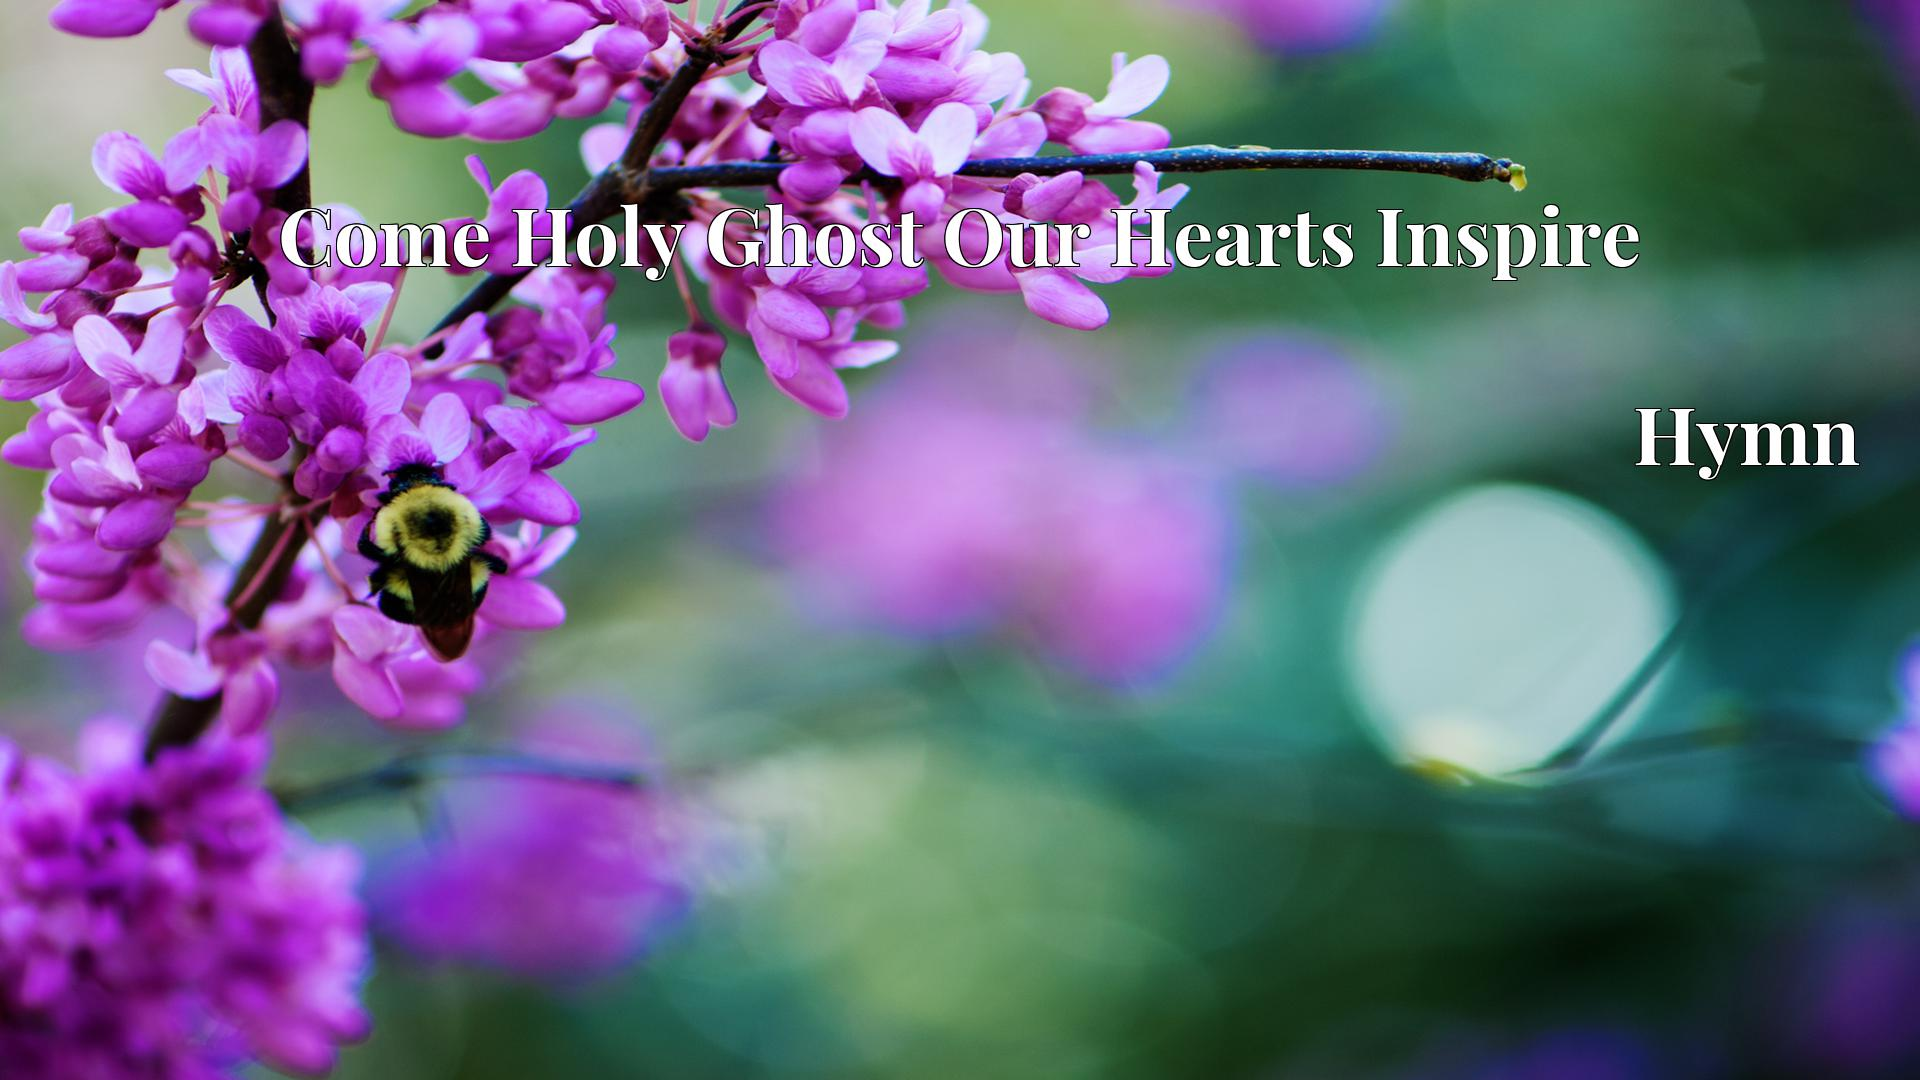 Come Holy Ghost Our Hearts Inspire - Hymn